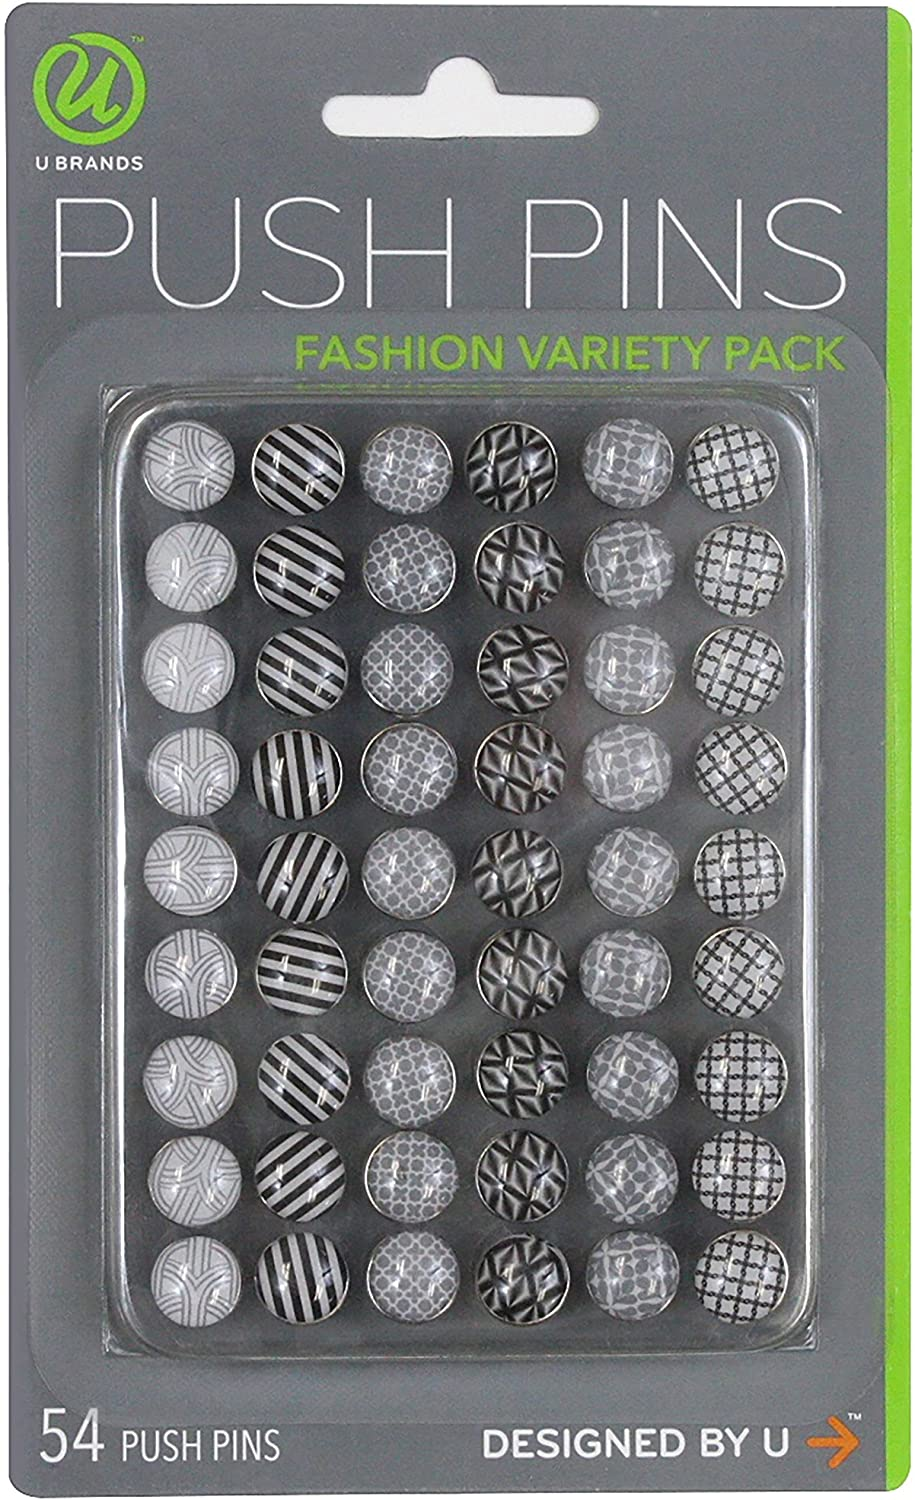 U Brands Fashion Steel Push Pins, Black White & Gray Assorted Colors, 54 Count - 575U06-24